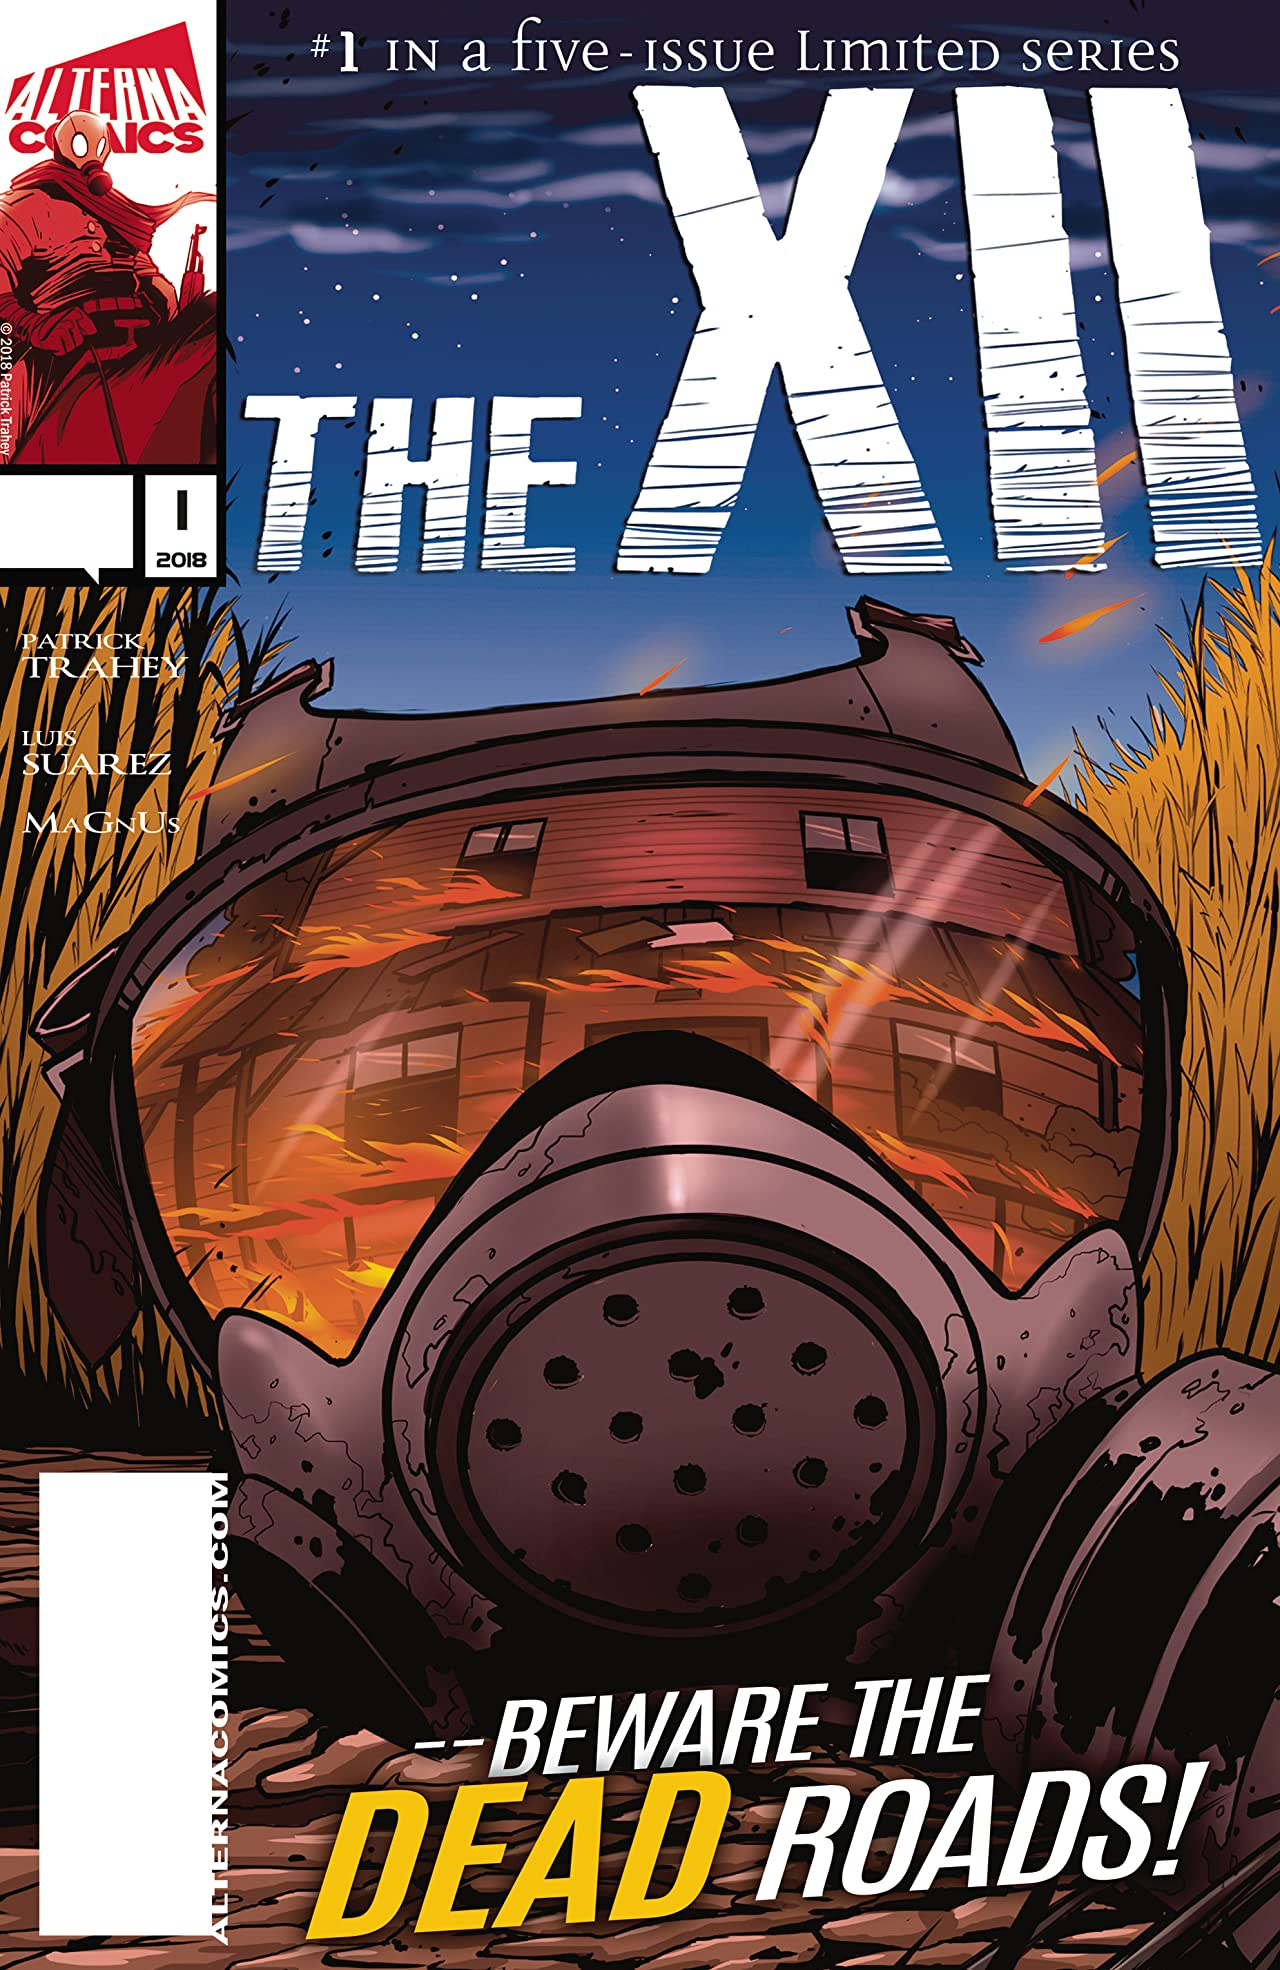 The XII: The Father #1